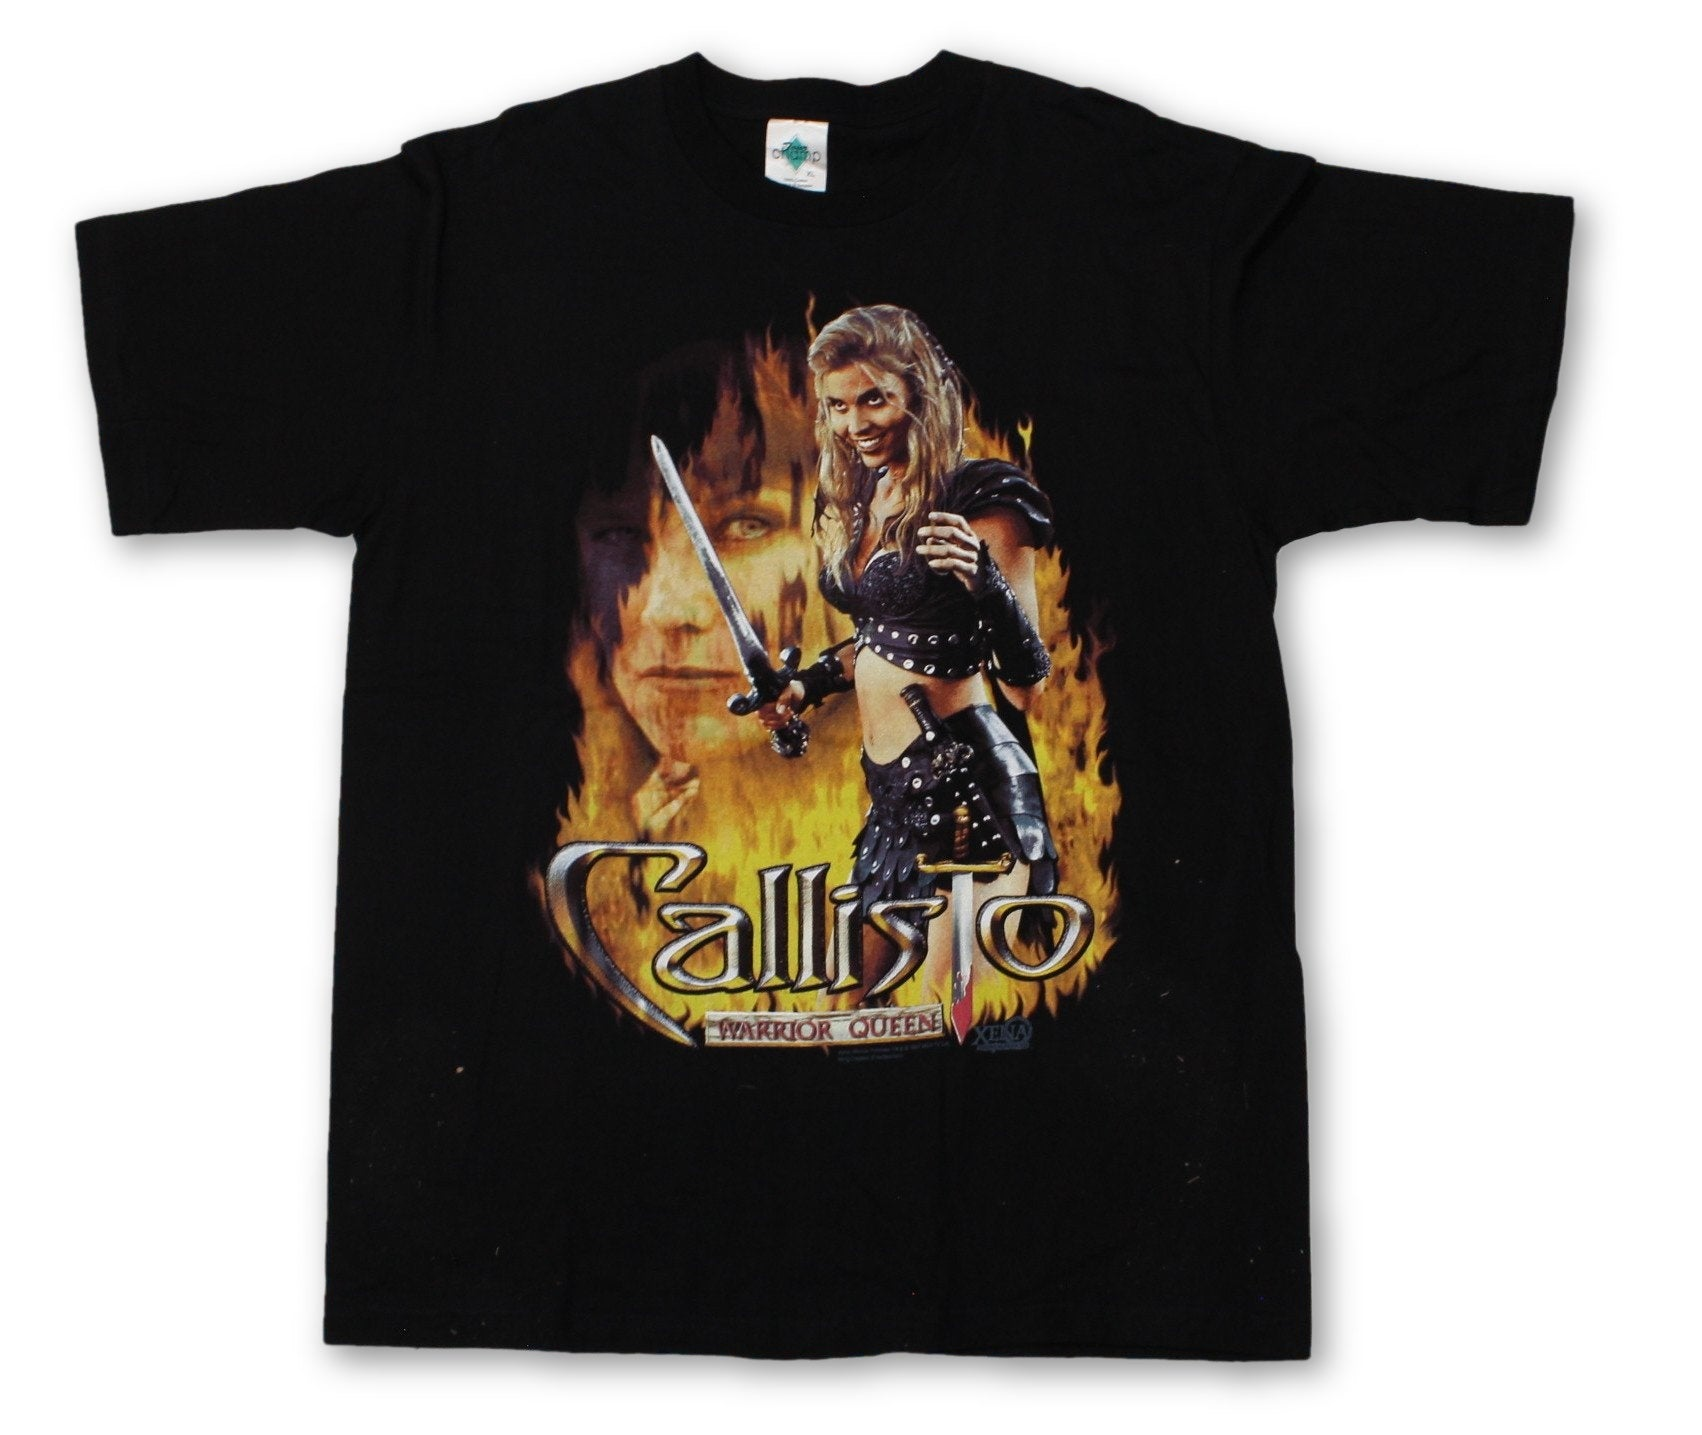 "Vintage Xena the Warrior Princess ""Callisio"" T-Shirt"